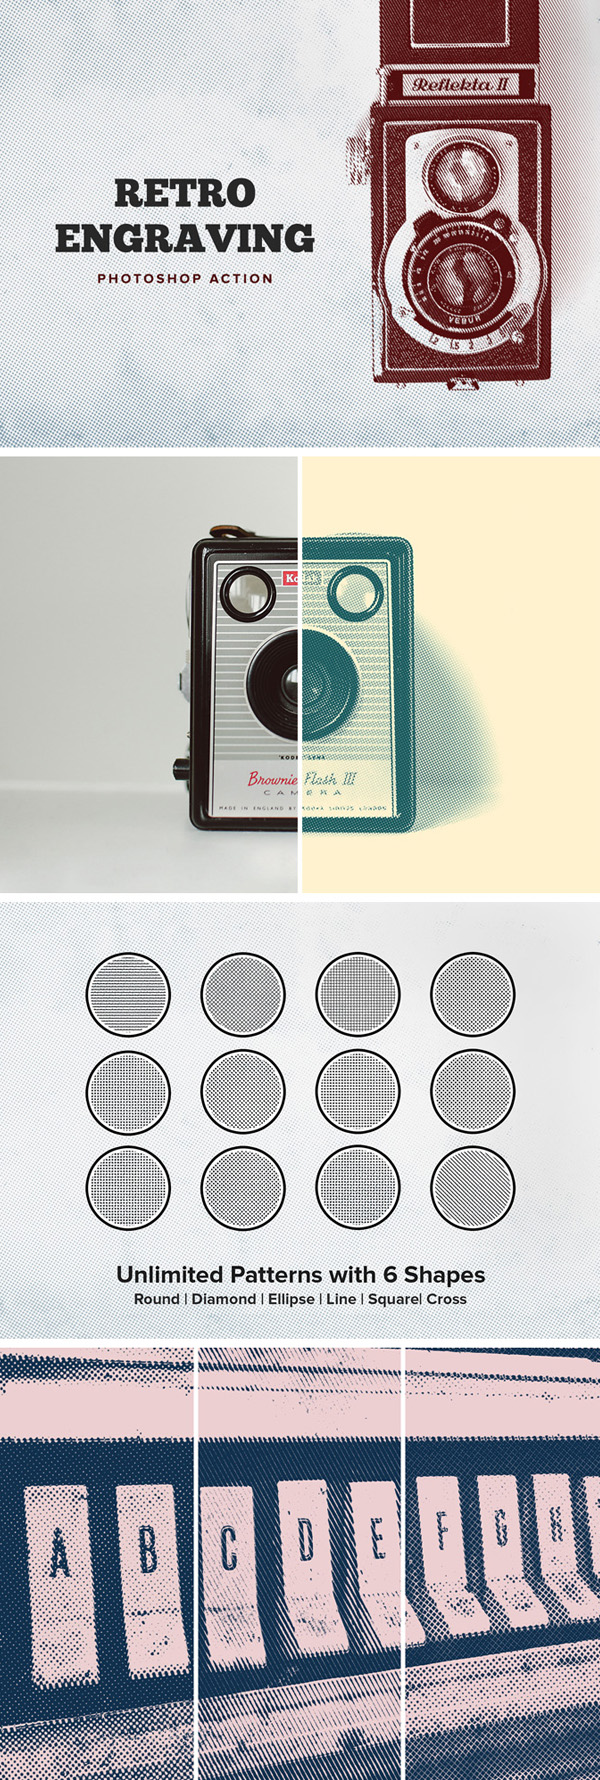 Freebies for 2019: Free Retro Engraving Photoshop Action